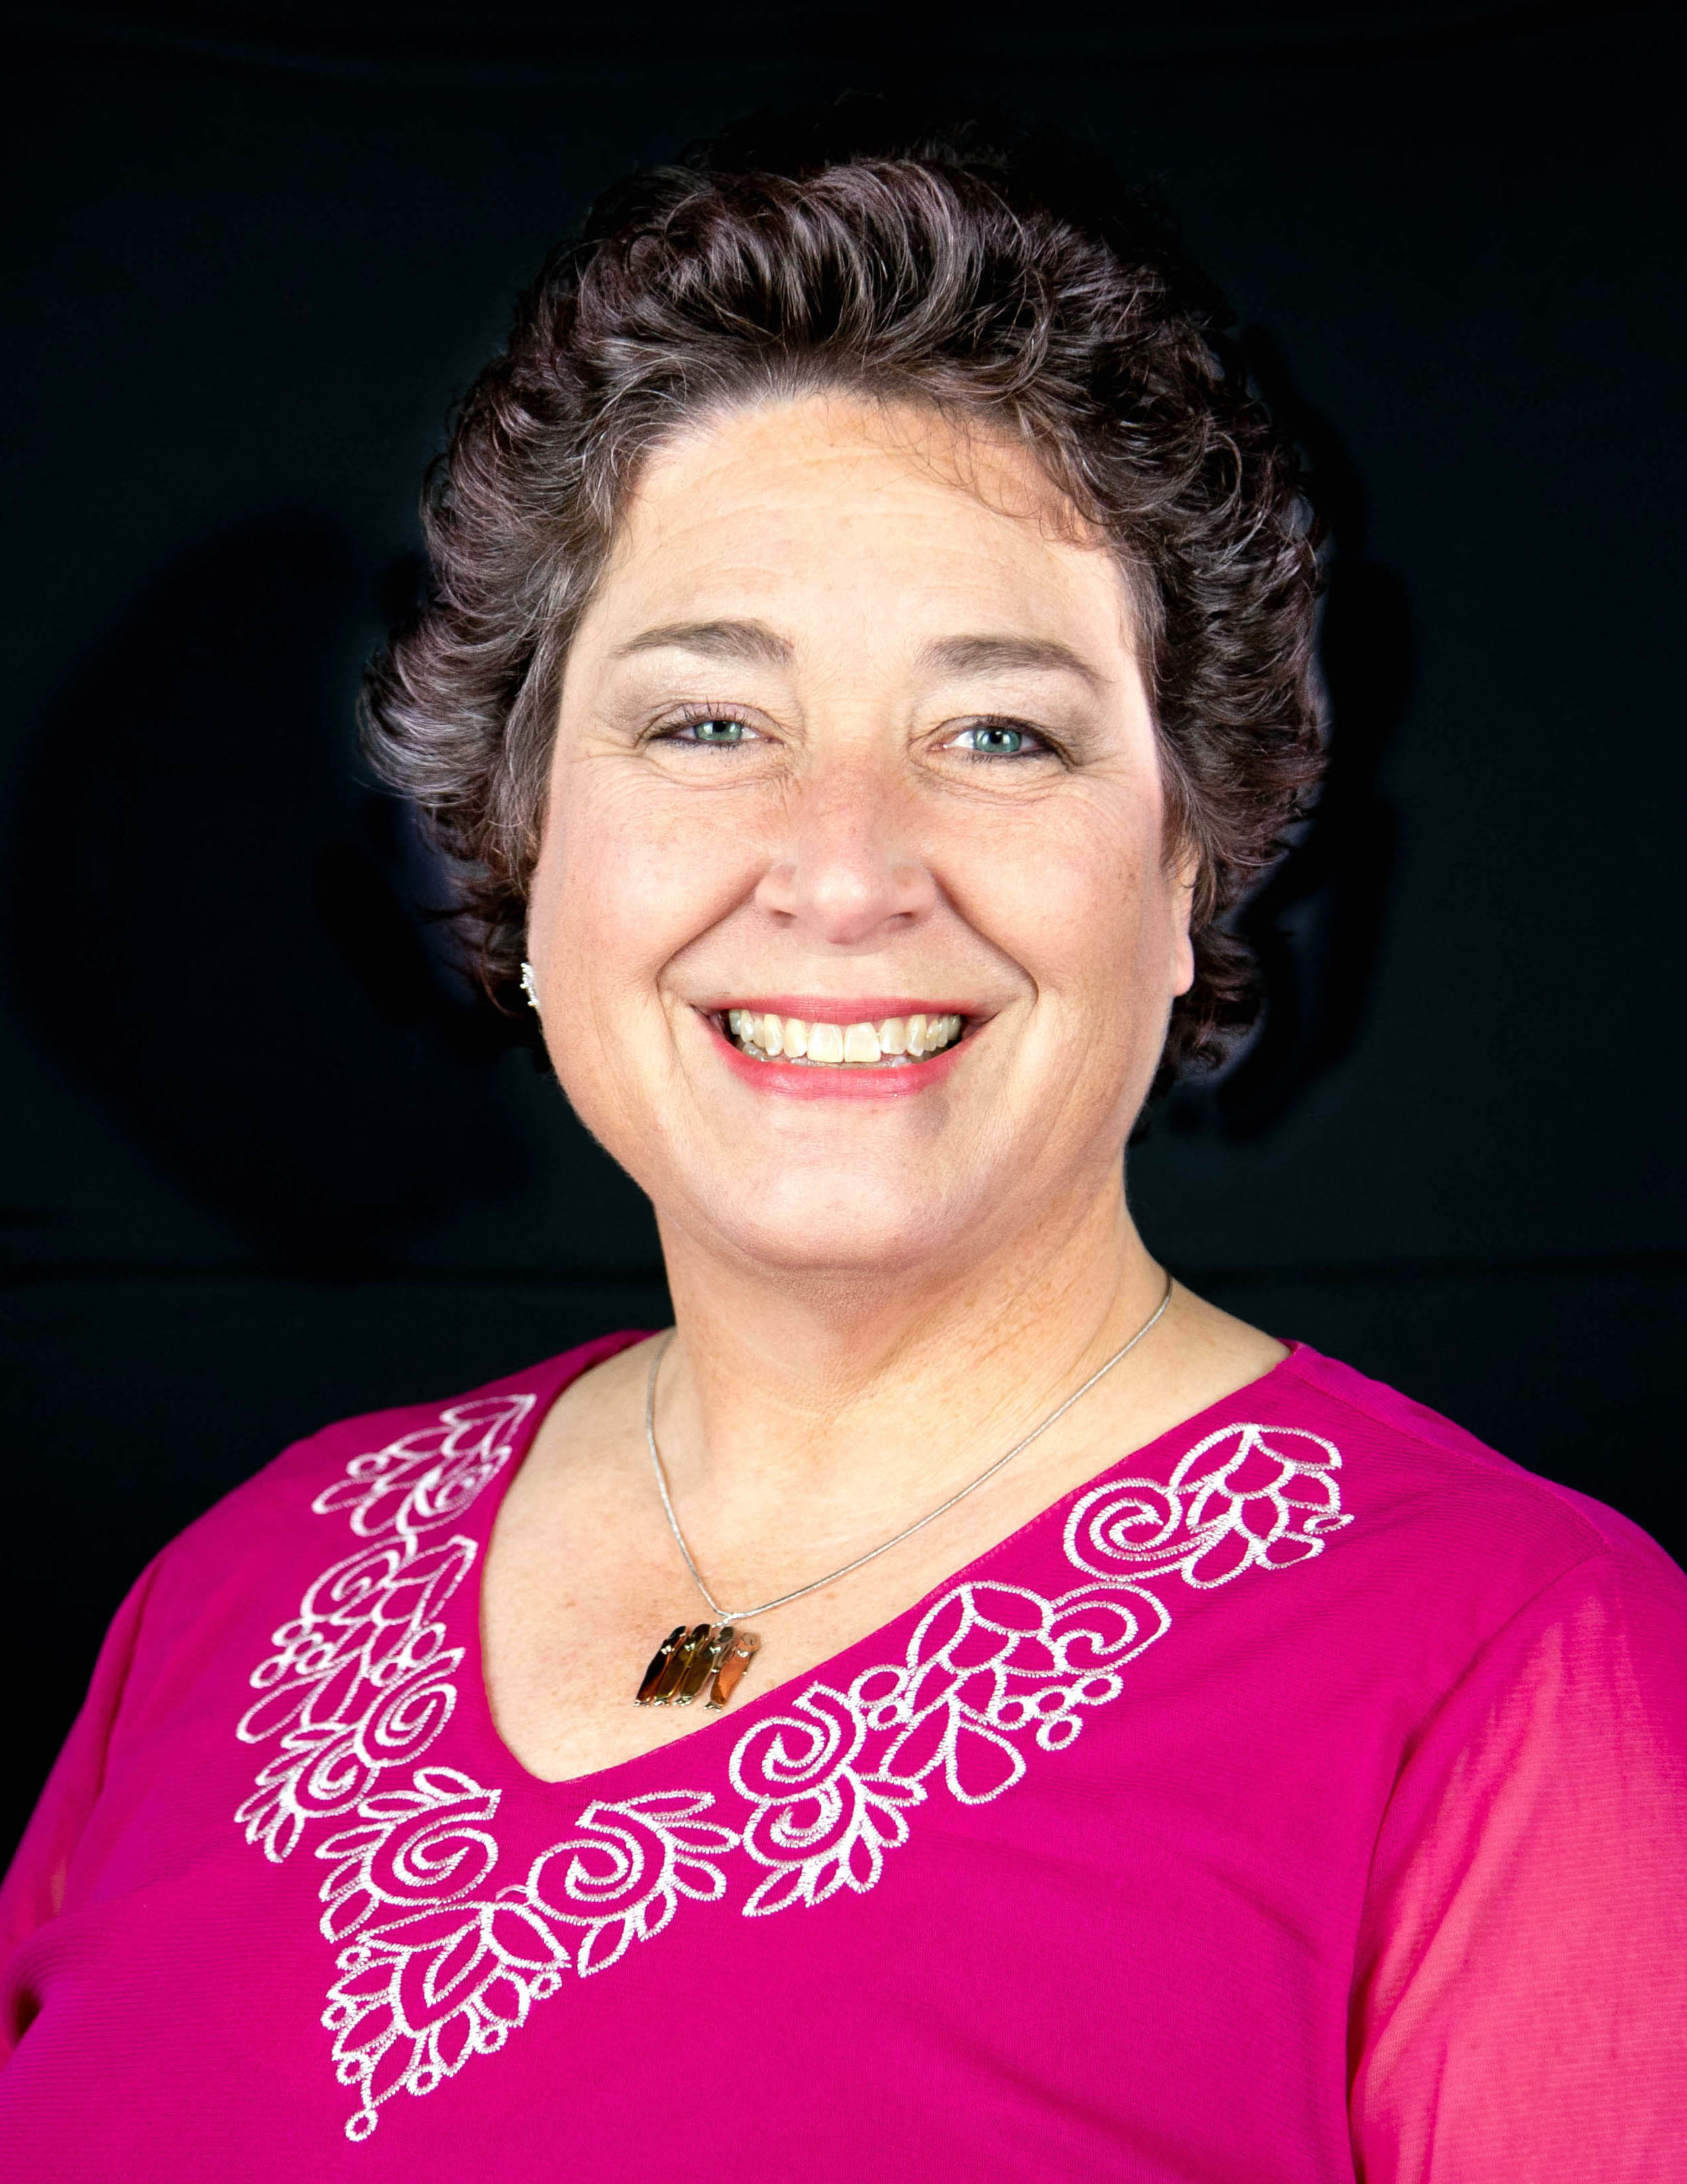 Leslie Schultz, Bass    Leslie joined the Cincinnati Sound Sweet Adelines chorus in 2018 as a tribute to her grandmother, who sang with the Royal Palm Chapter chorus and  Coco-Notes quartet in West Palm Beach, Florida during the 1950s. The Royal Palm chapter chorus and Coco-Notes quartet became Southeastern Regional Champions in 1956. Music has always been a part of Leslie's life thru singing in church/school choirs and the high school show choir (where she won the Choral award during her senior year), playing piano for over 12 years and studying dance for over 15 years. She has been married to one of her biggest fans for over 20 years and has three grown sons and two daughter-in-laws. Recently, Leslie became a new grandmother with the birth of her first grandson. Leslie currently works in the Alumni Relations Department at Northern Kentucky University (NKU), volunteers for church and community events, enjoys traveling or a vigorous walk outside and attends NKU part-time to finish her degree in Business Administration.